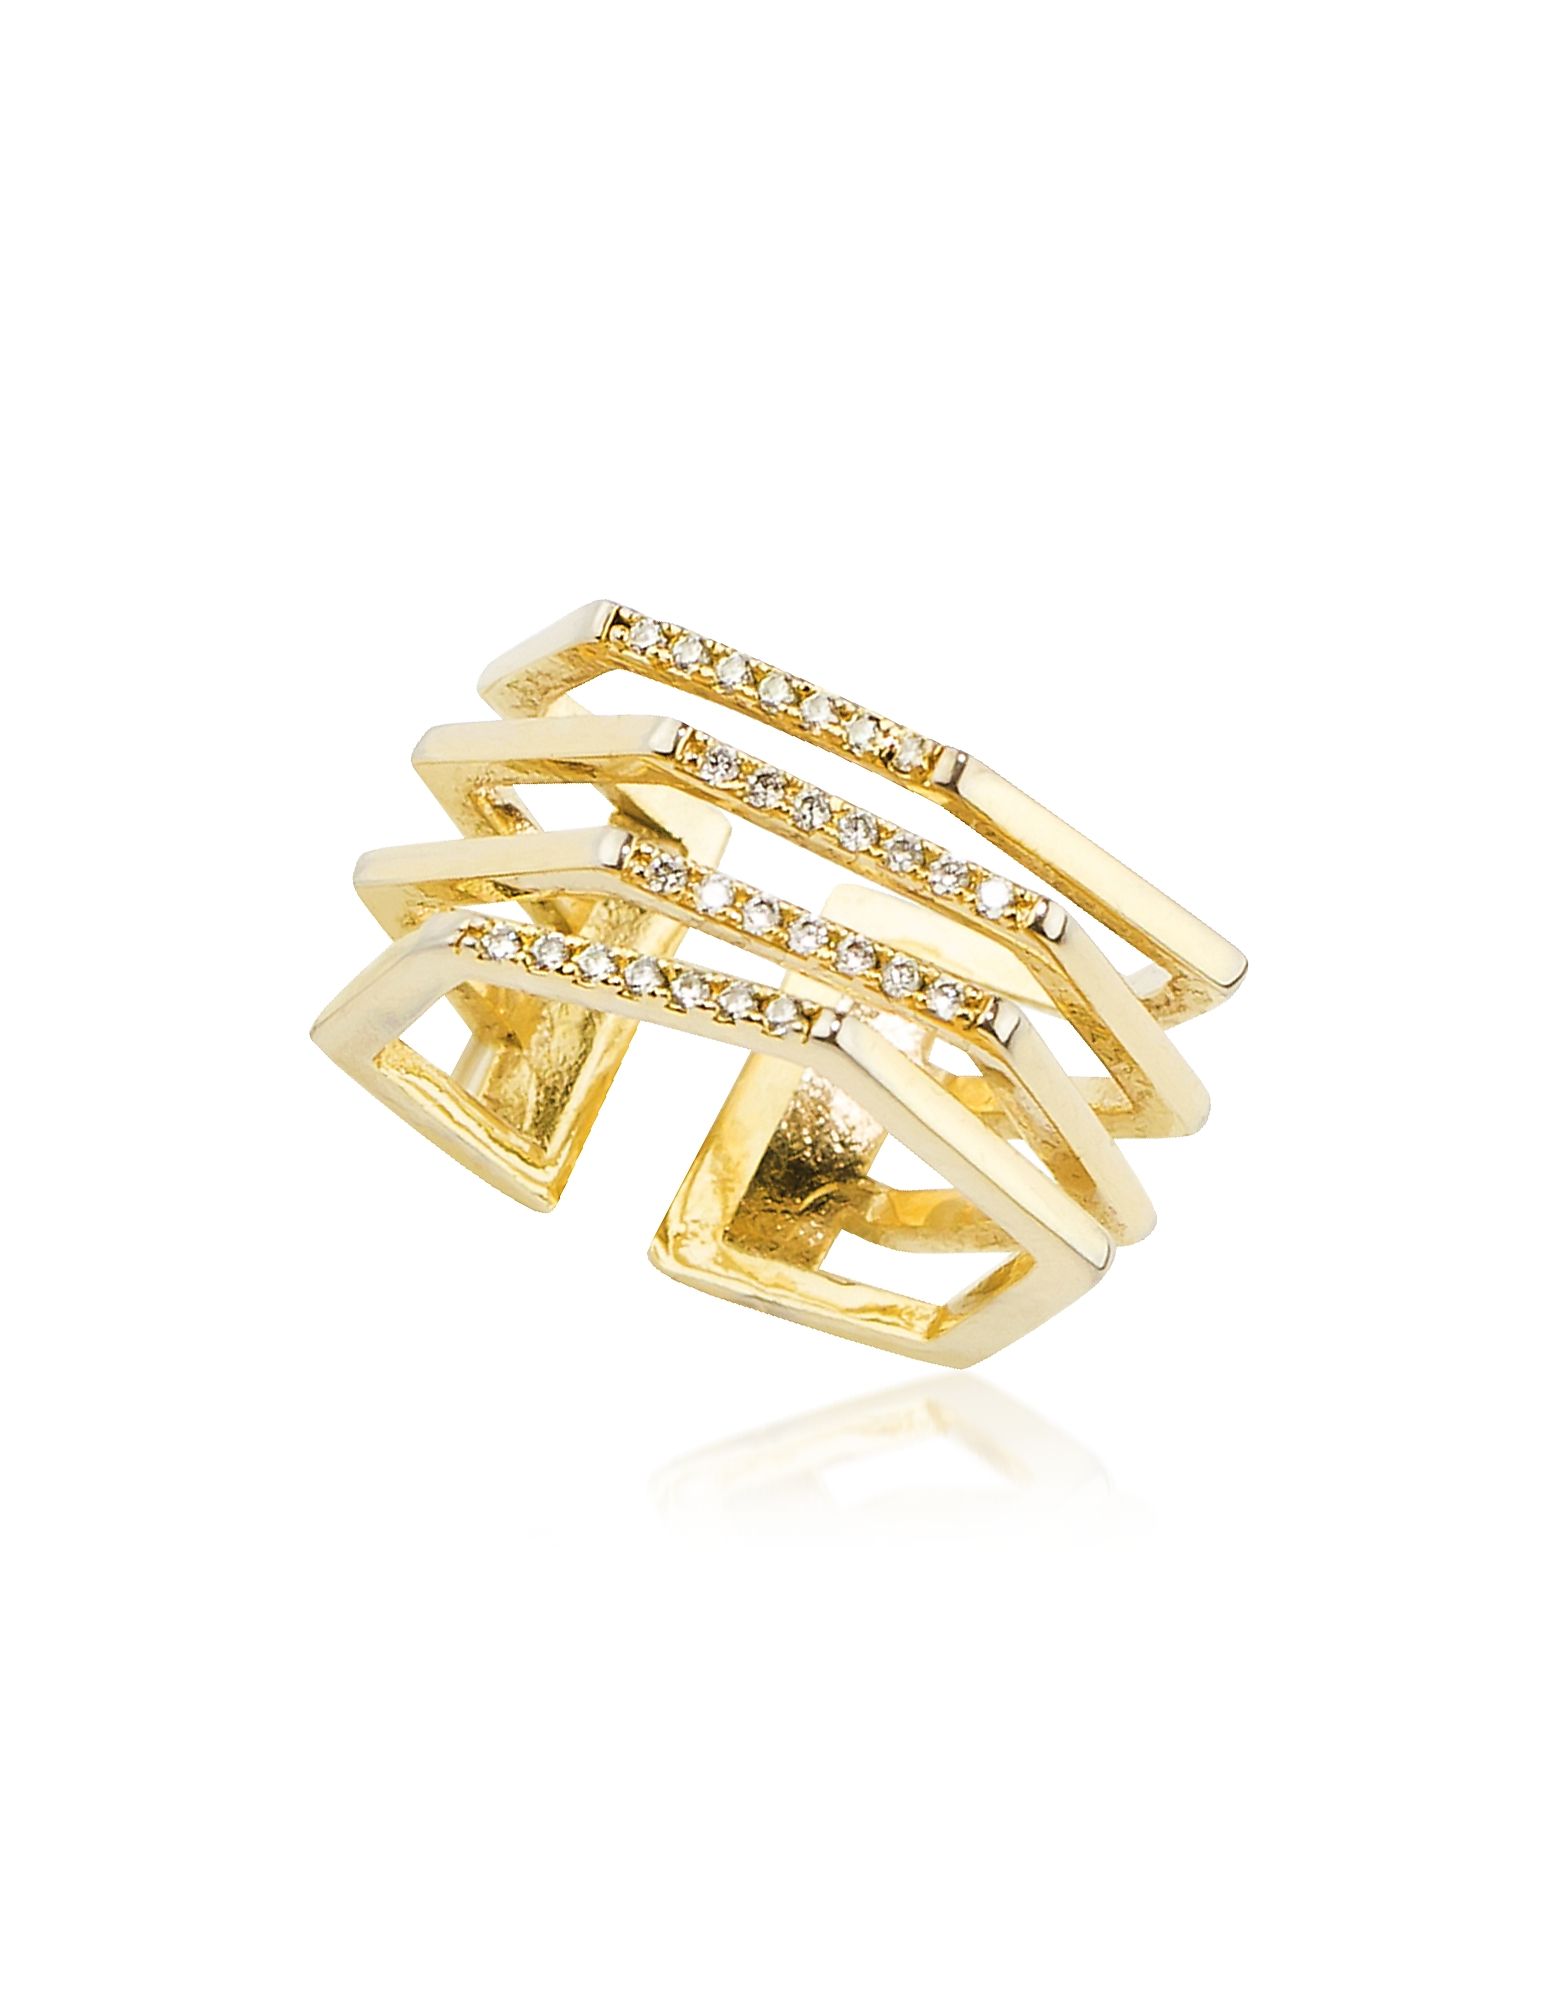 Federica Tosi Rings, Cage Ring